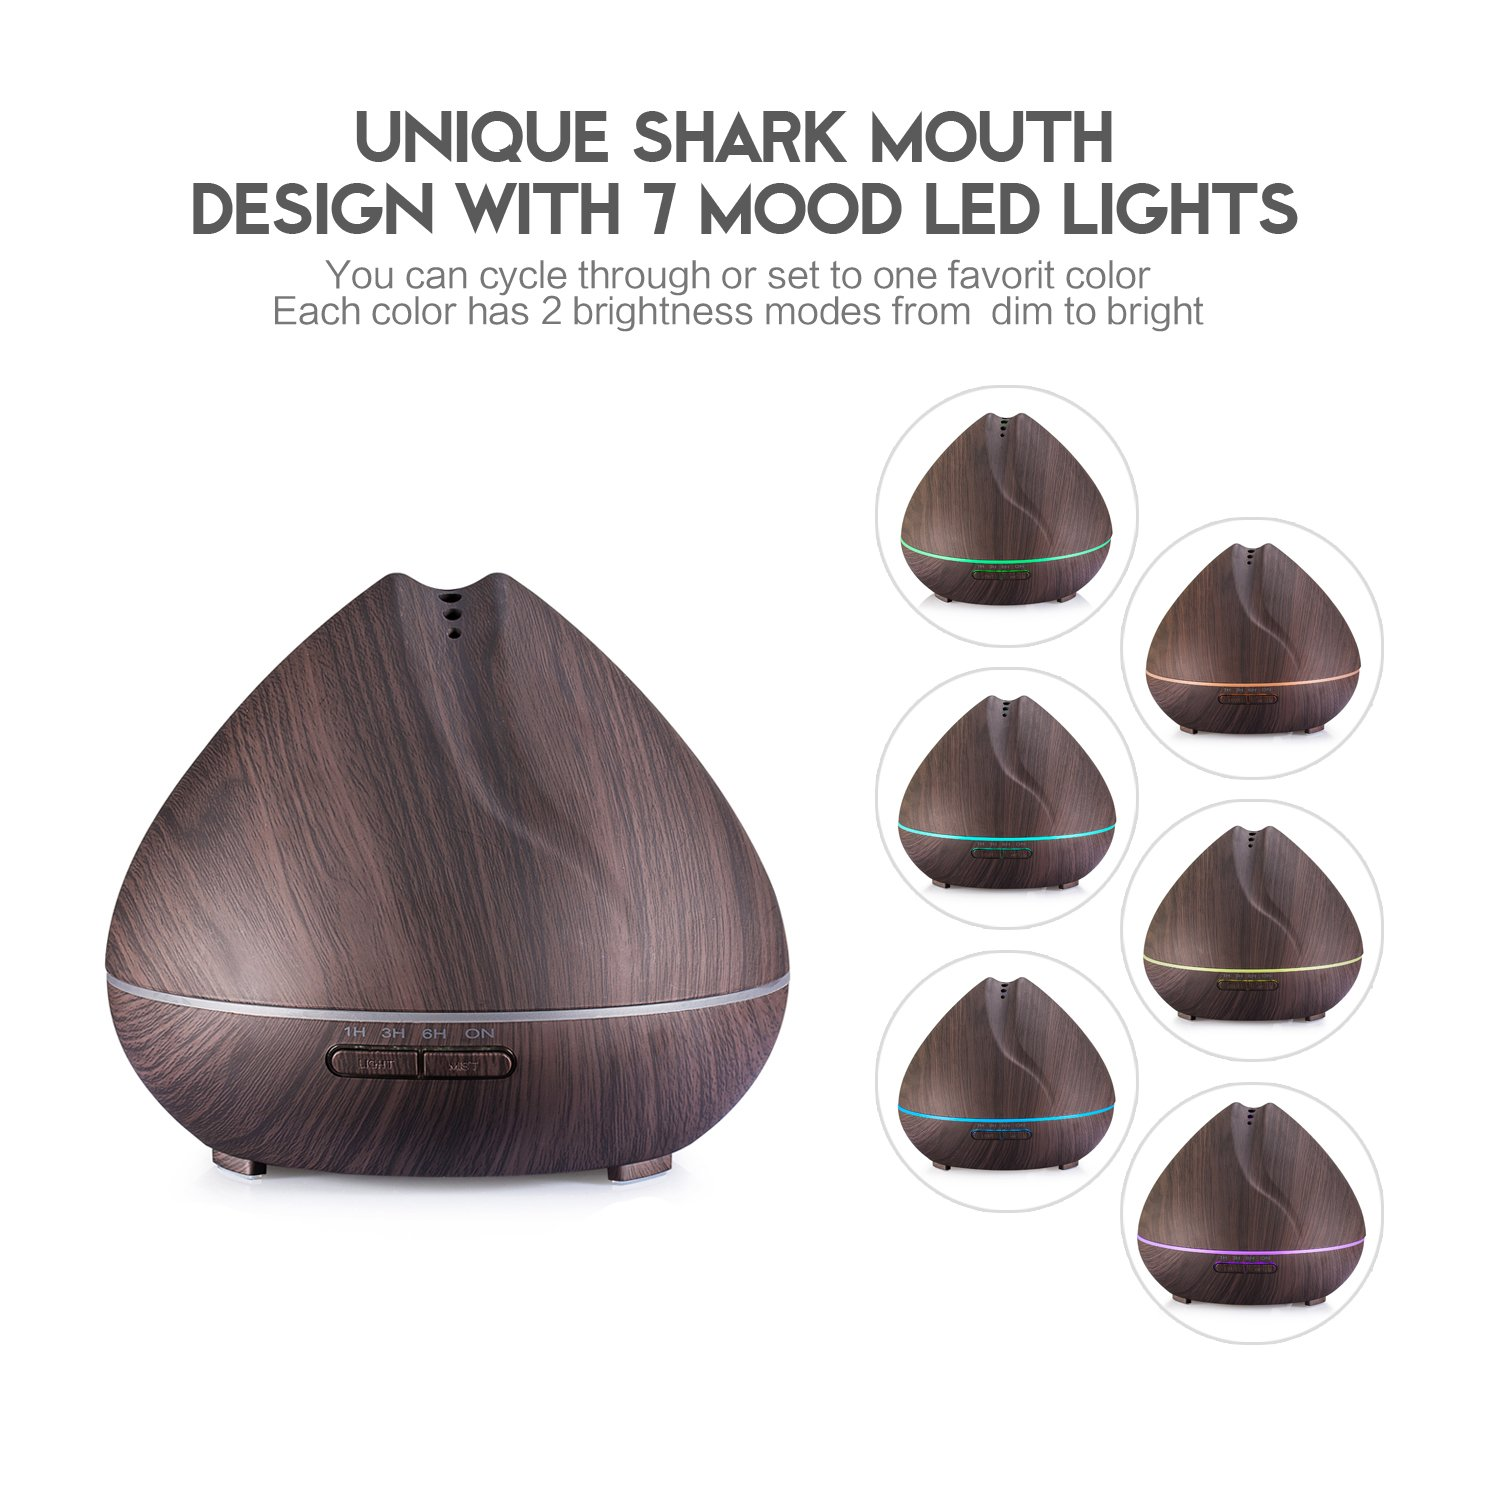 Leofan Aromatherapy Essential Oil Diffuser 400ml Wood Grain Ultrasonic Cool Mist Humidifier with 7 Color LED Lights Changing and Waterless Auto Shut-off (Dark Wood Grain) by Leofan (Image #2)